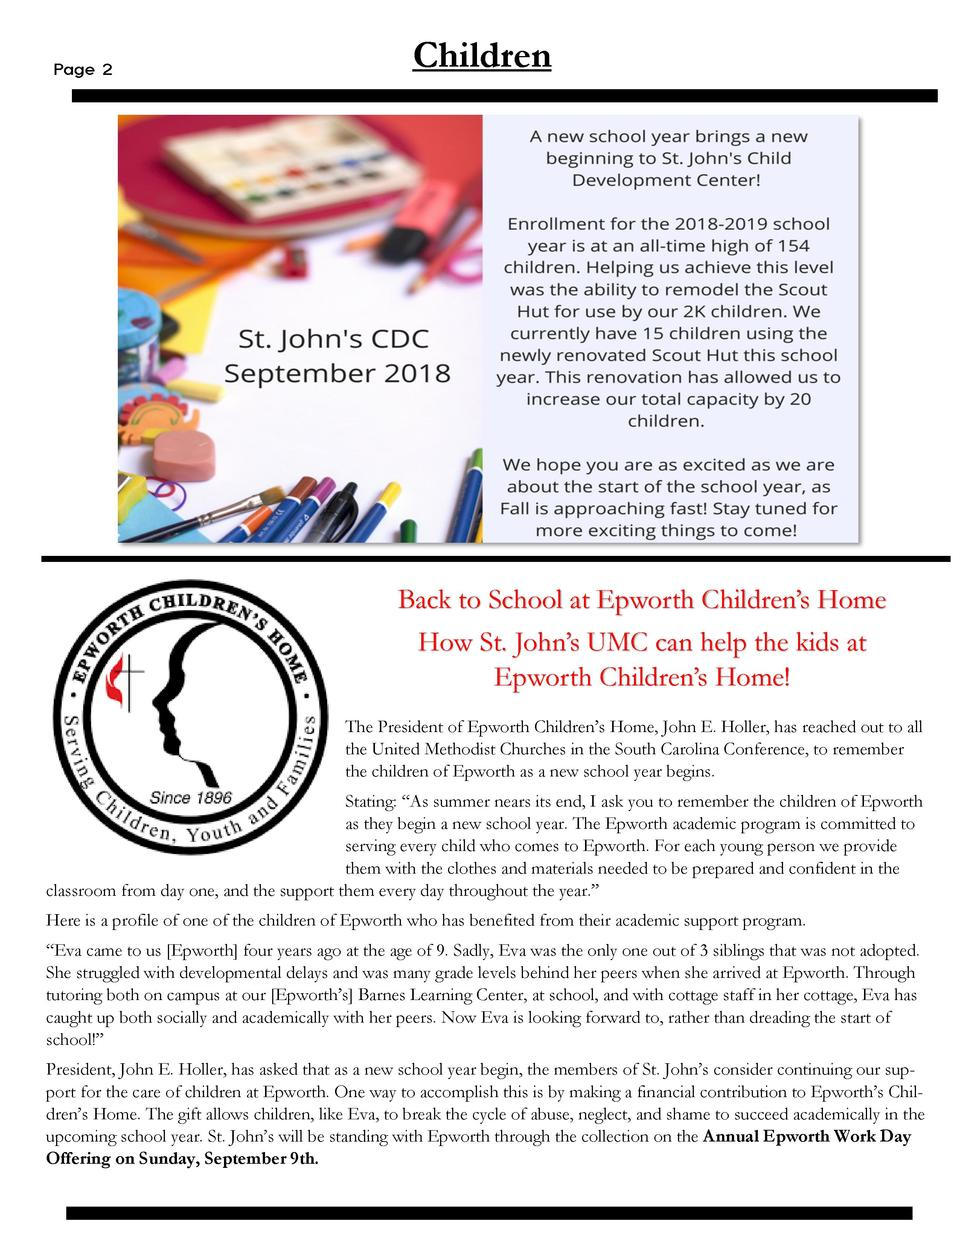 Page 2  Children  Back to School at Epworth Children   s Home  How St. John   s UMC can help the kids at Epworth Children ...